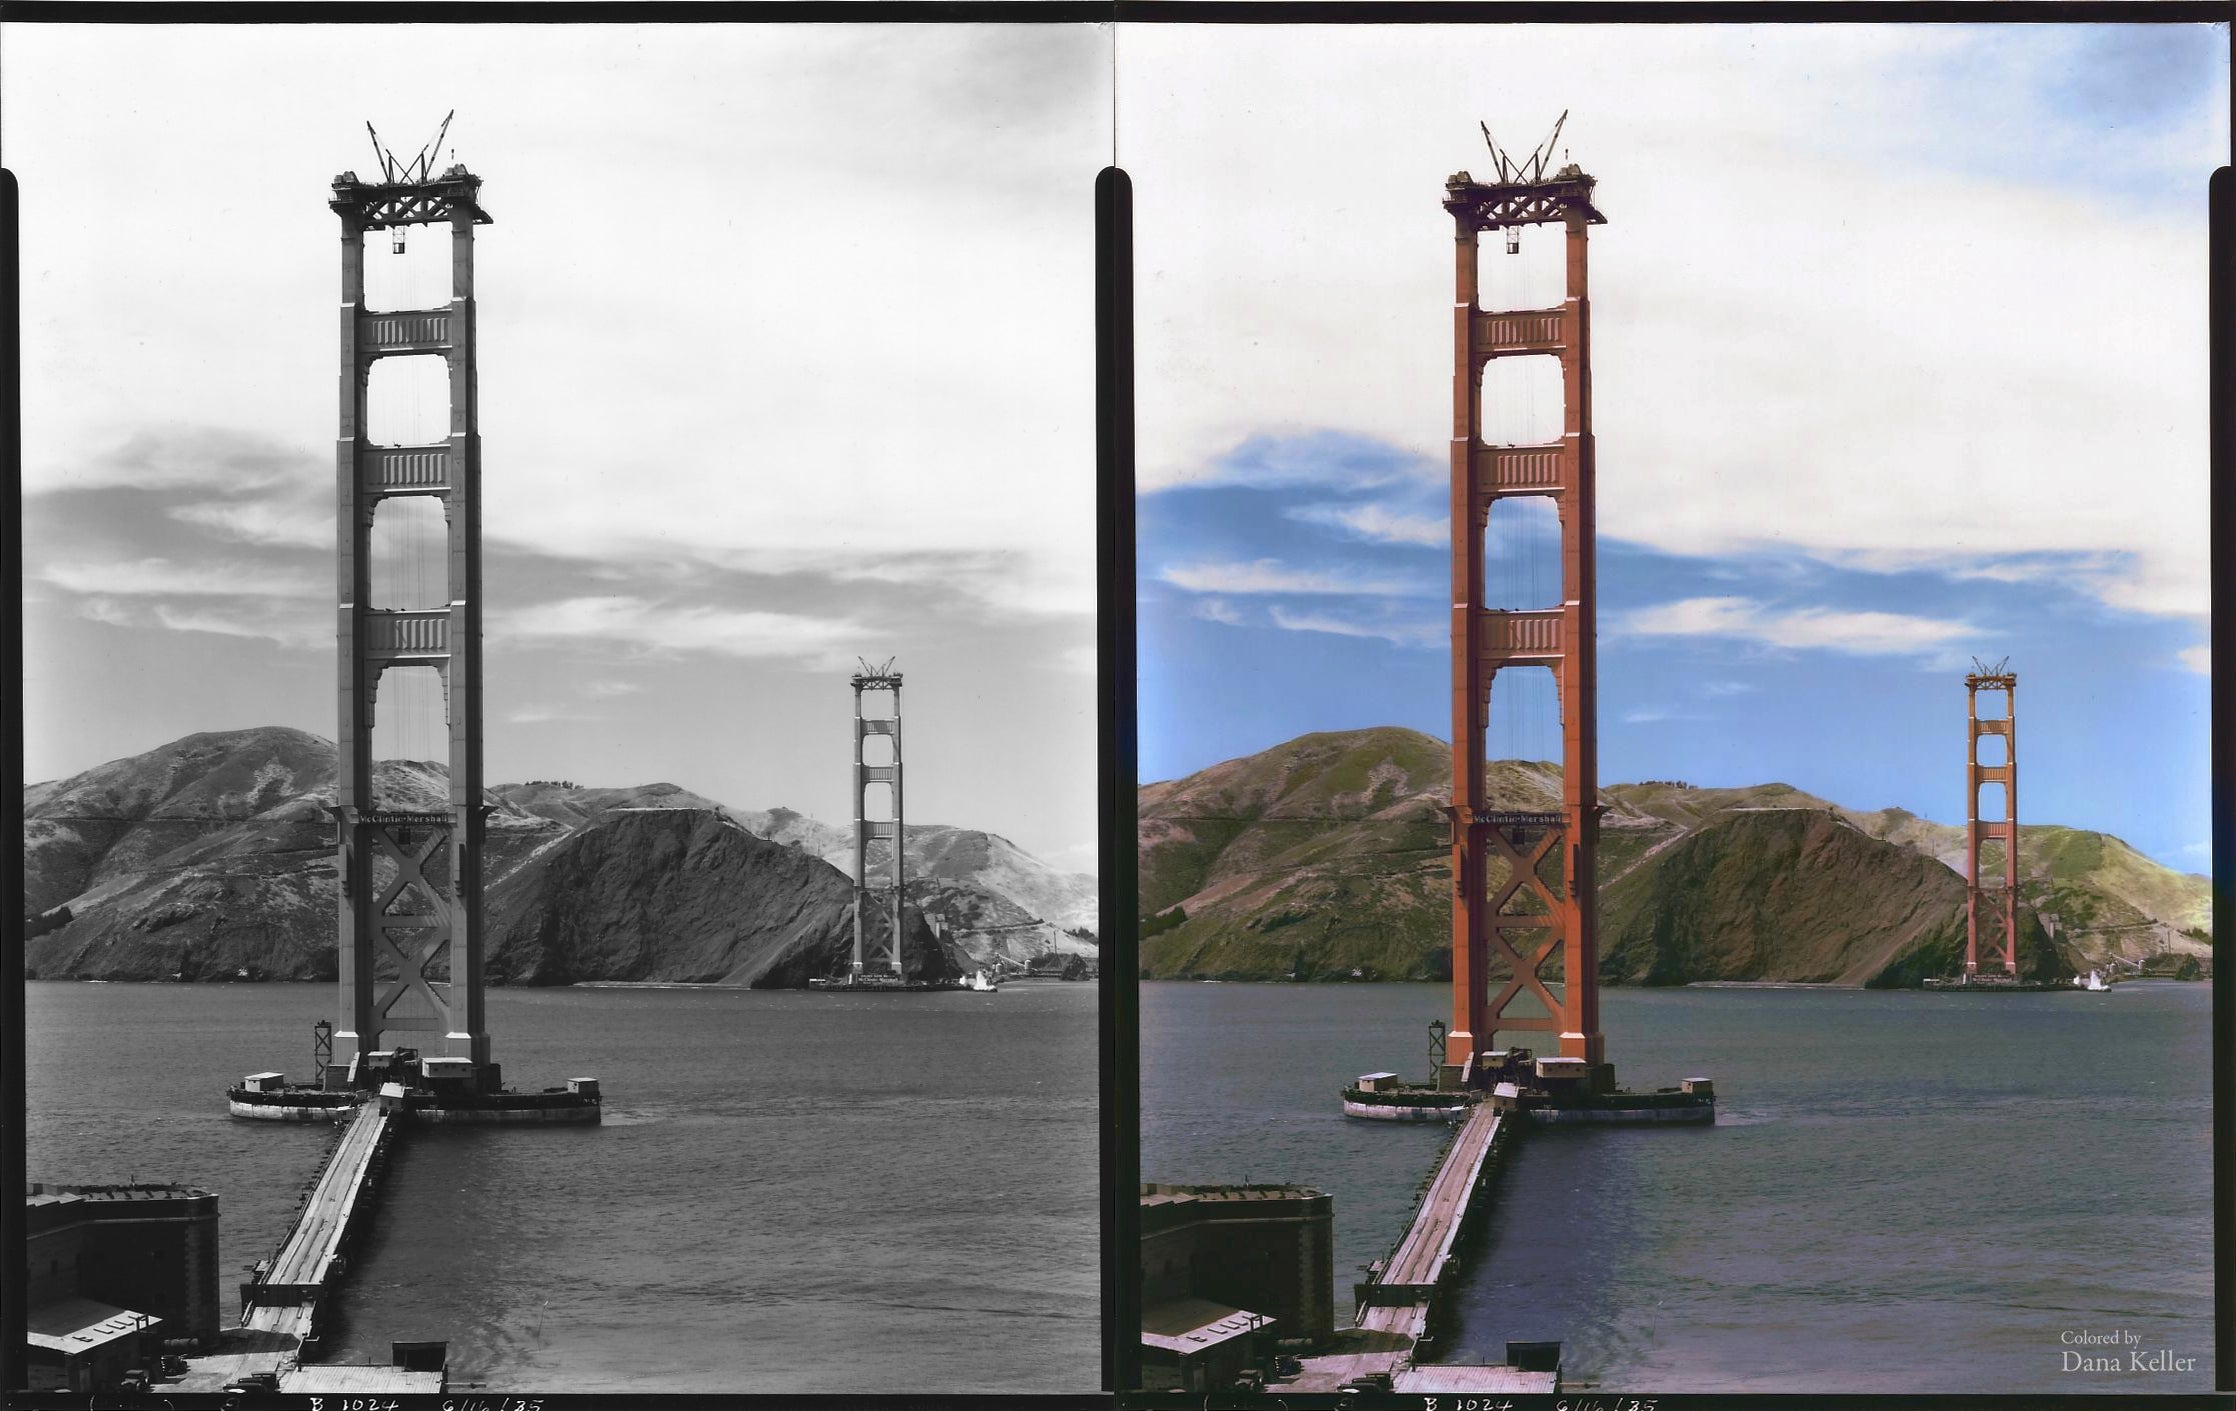 Inside the Colour Factory: My Chat With a Photo Colorizer